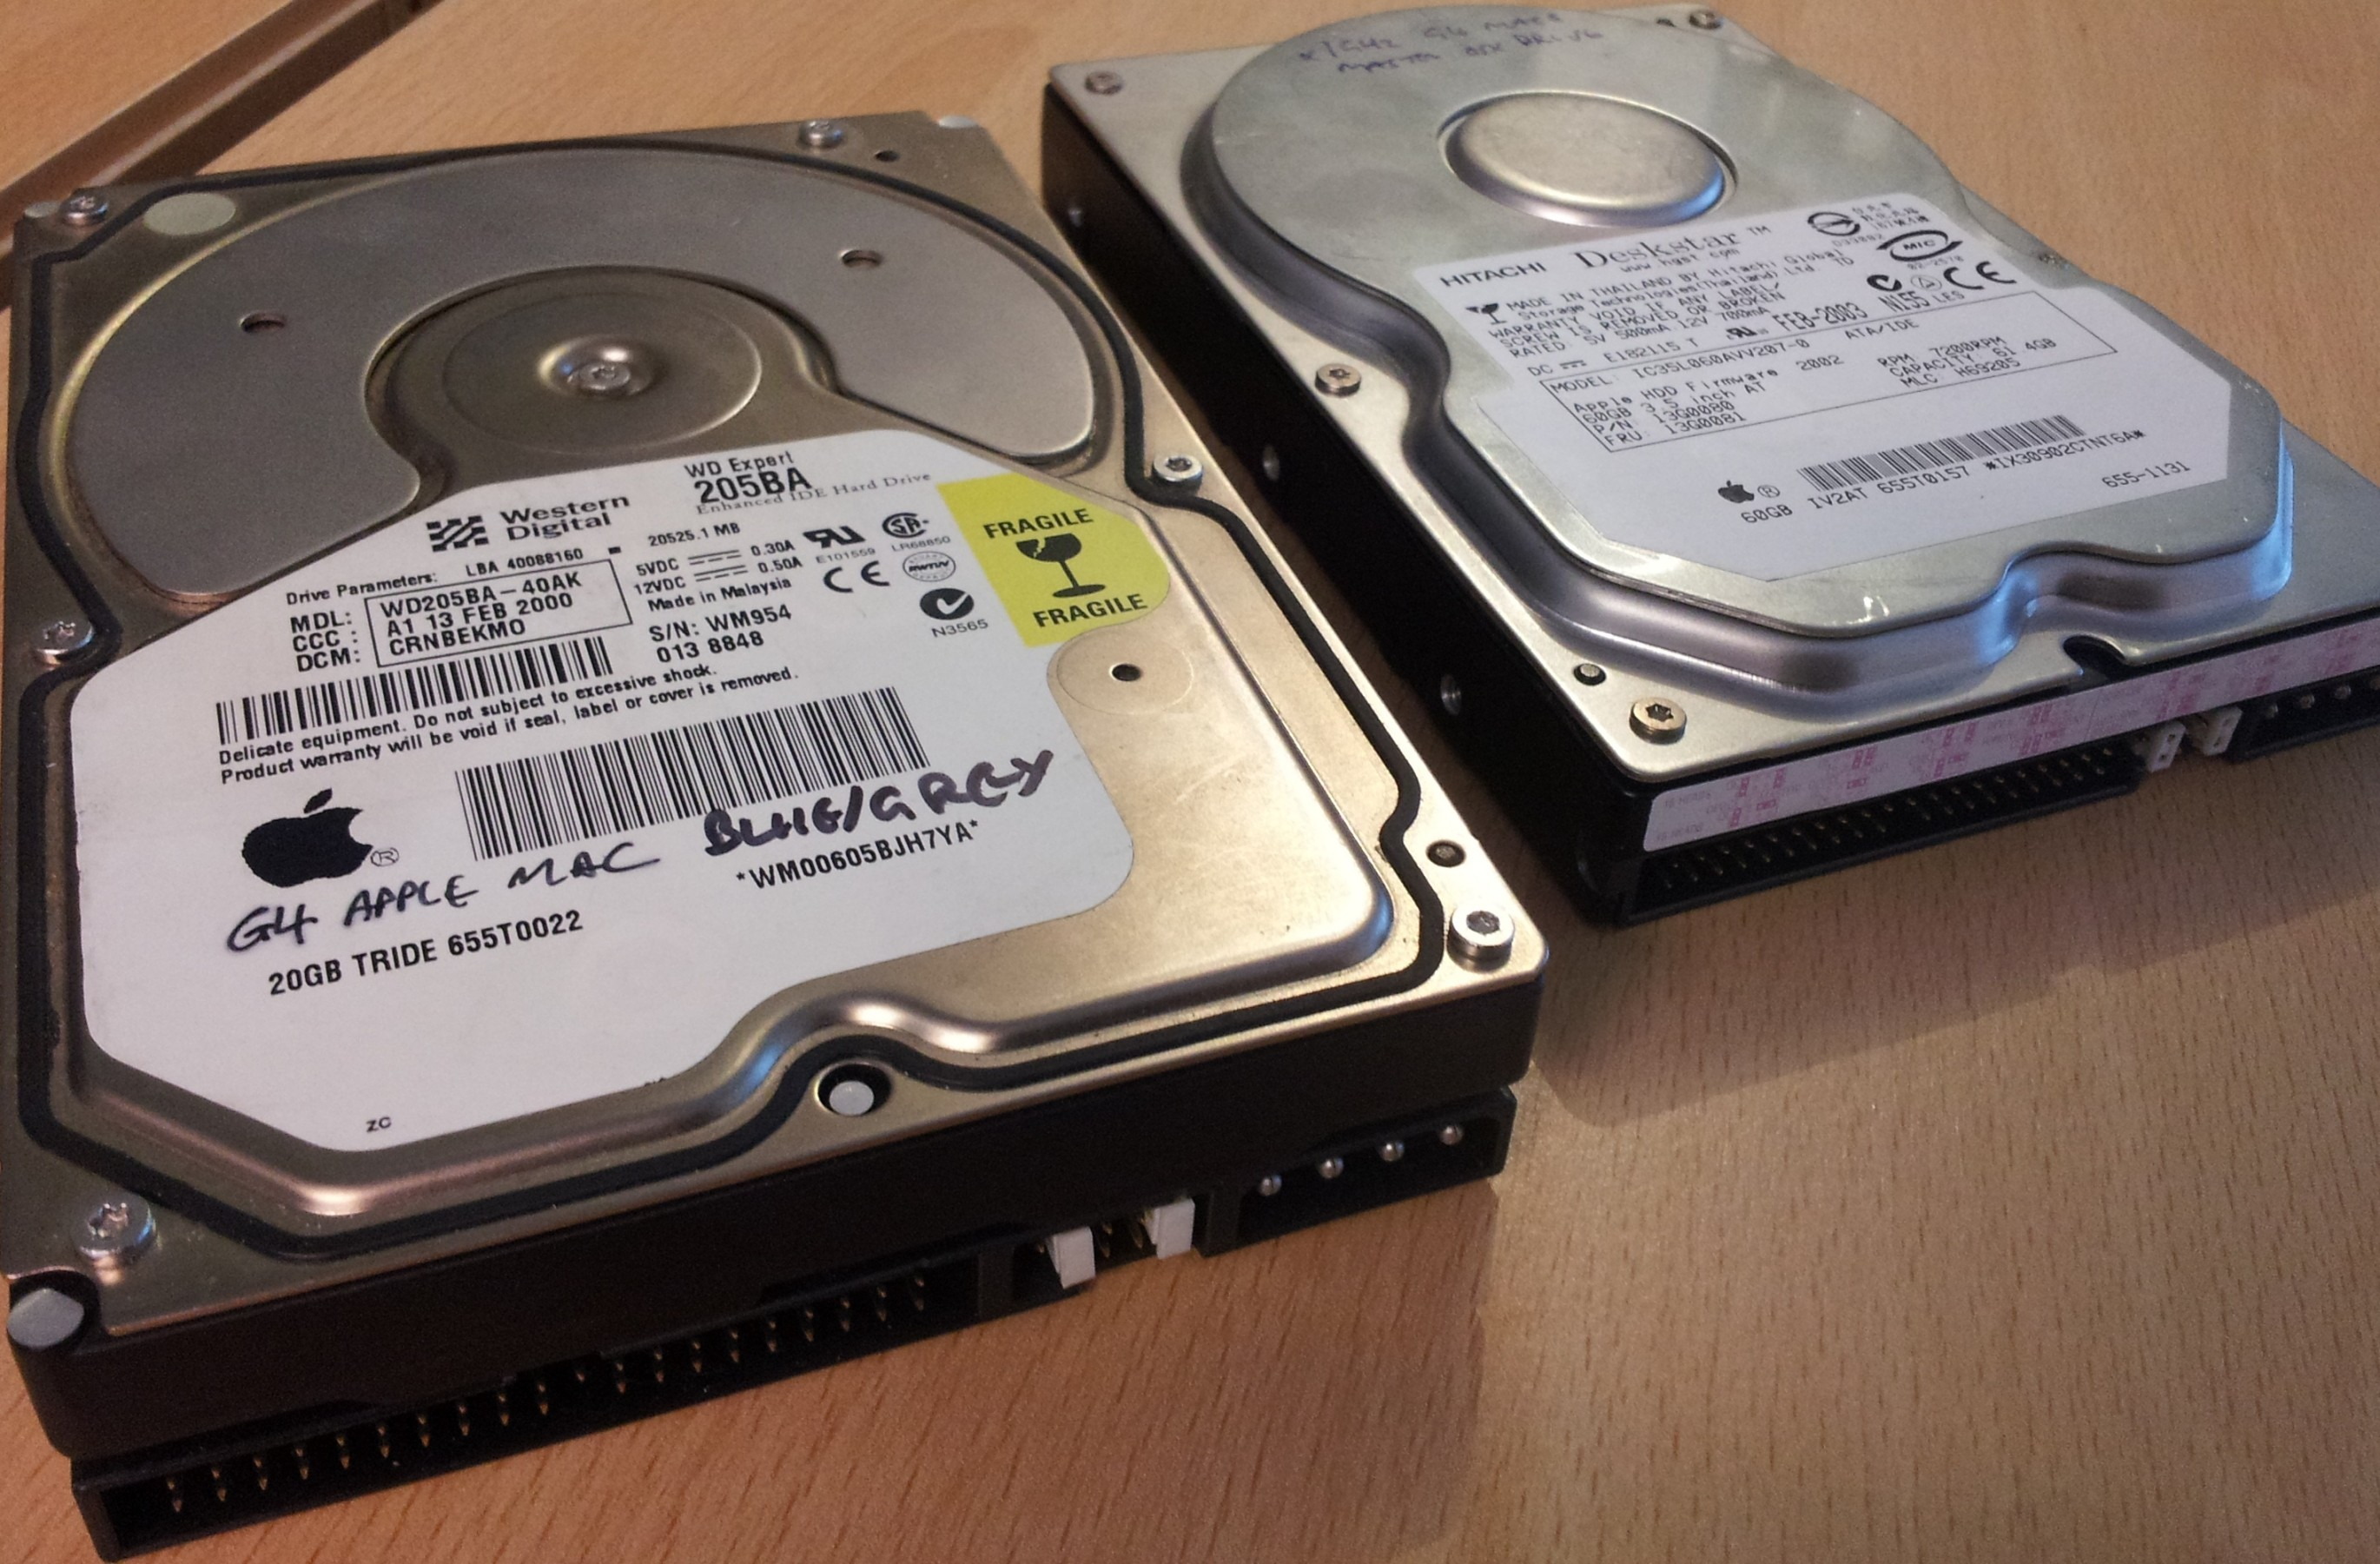 A pair of hard drives, one from an Apple G3, the other from a Mac G4, both with the Apple Logo on their label. One is a Western Digital Expert WD205BA 20GB and the is a 60GB Hitachi Deskstar IC35L060AVV207-0. These drives awaiting file transfer.